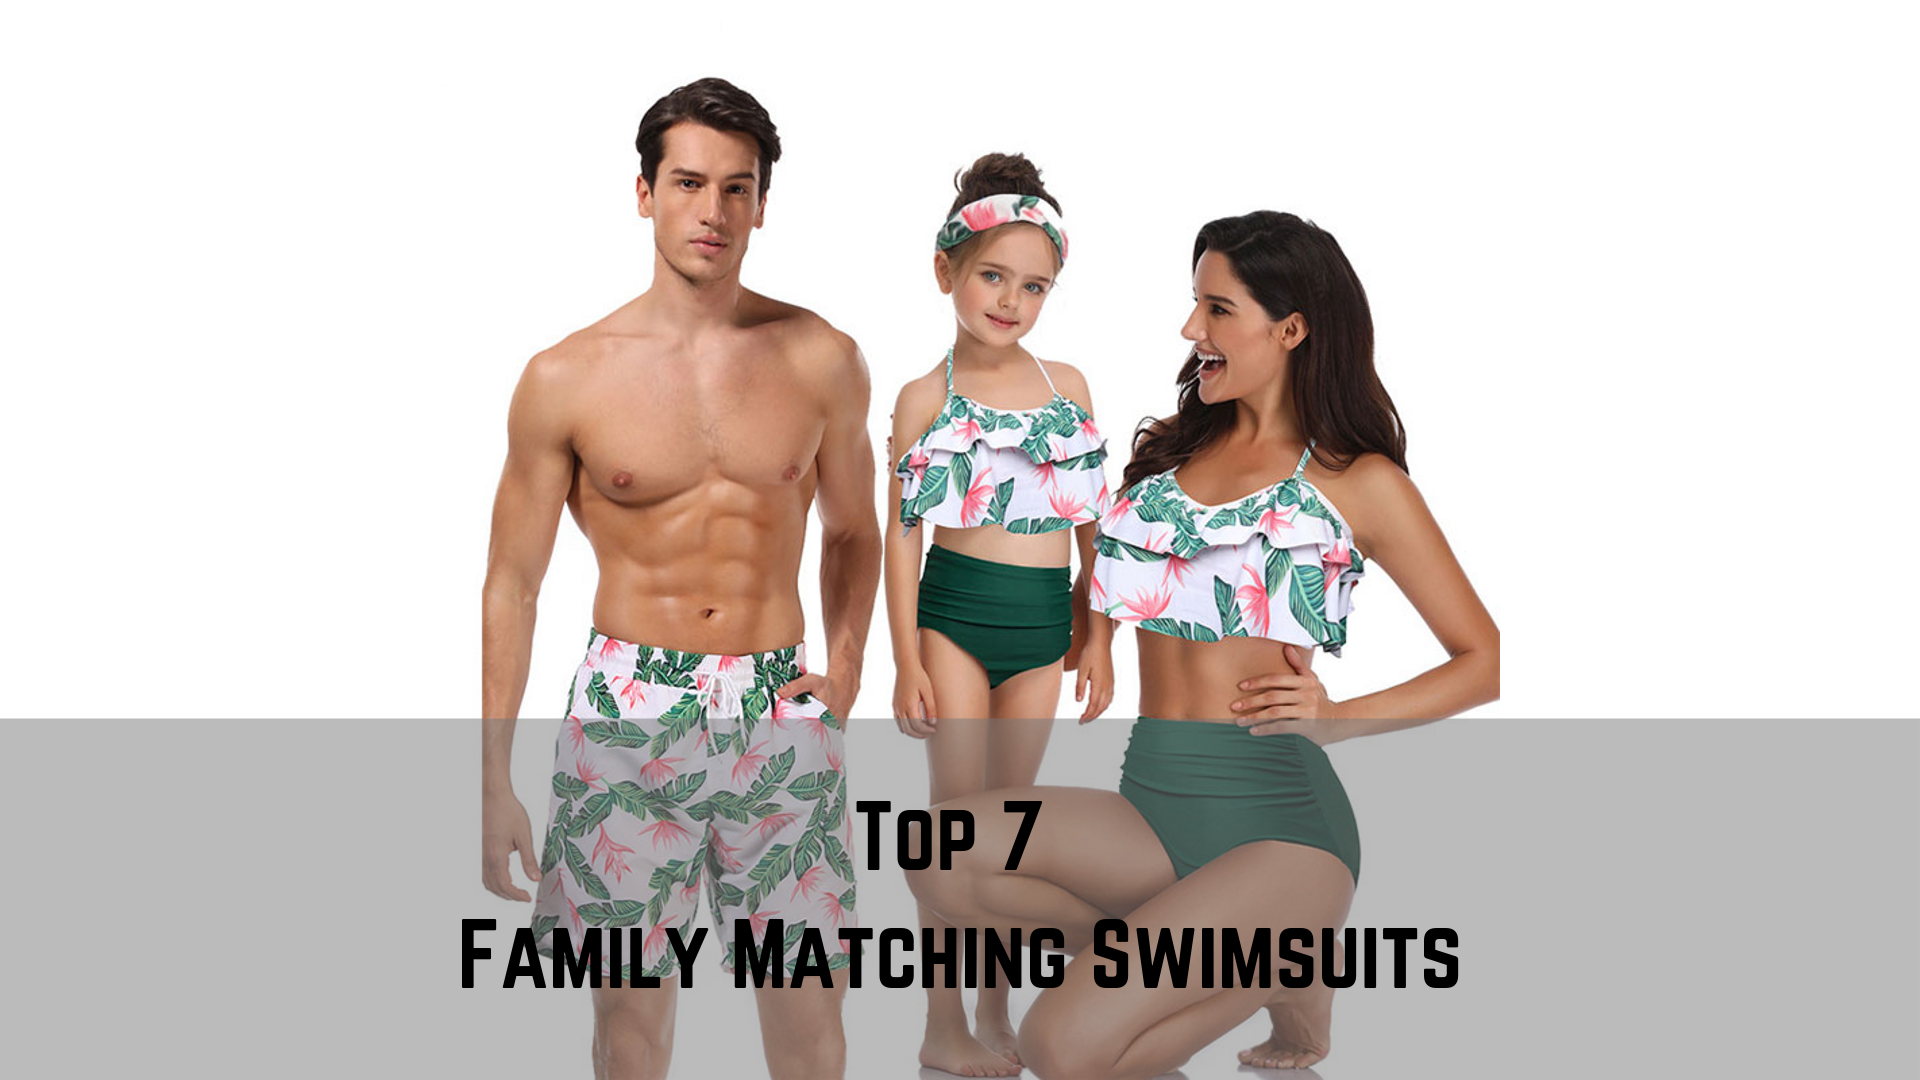 7 Top Family Matching Swimsuits in 2019